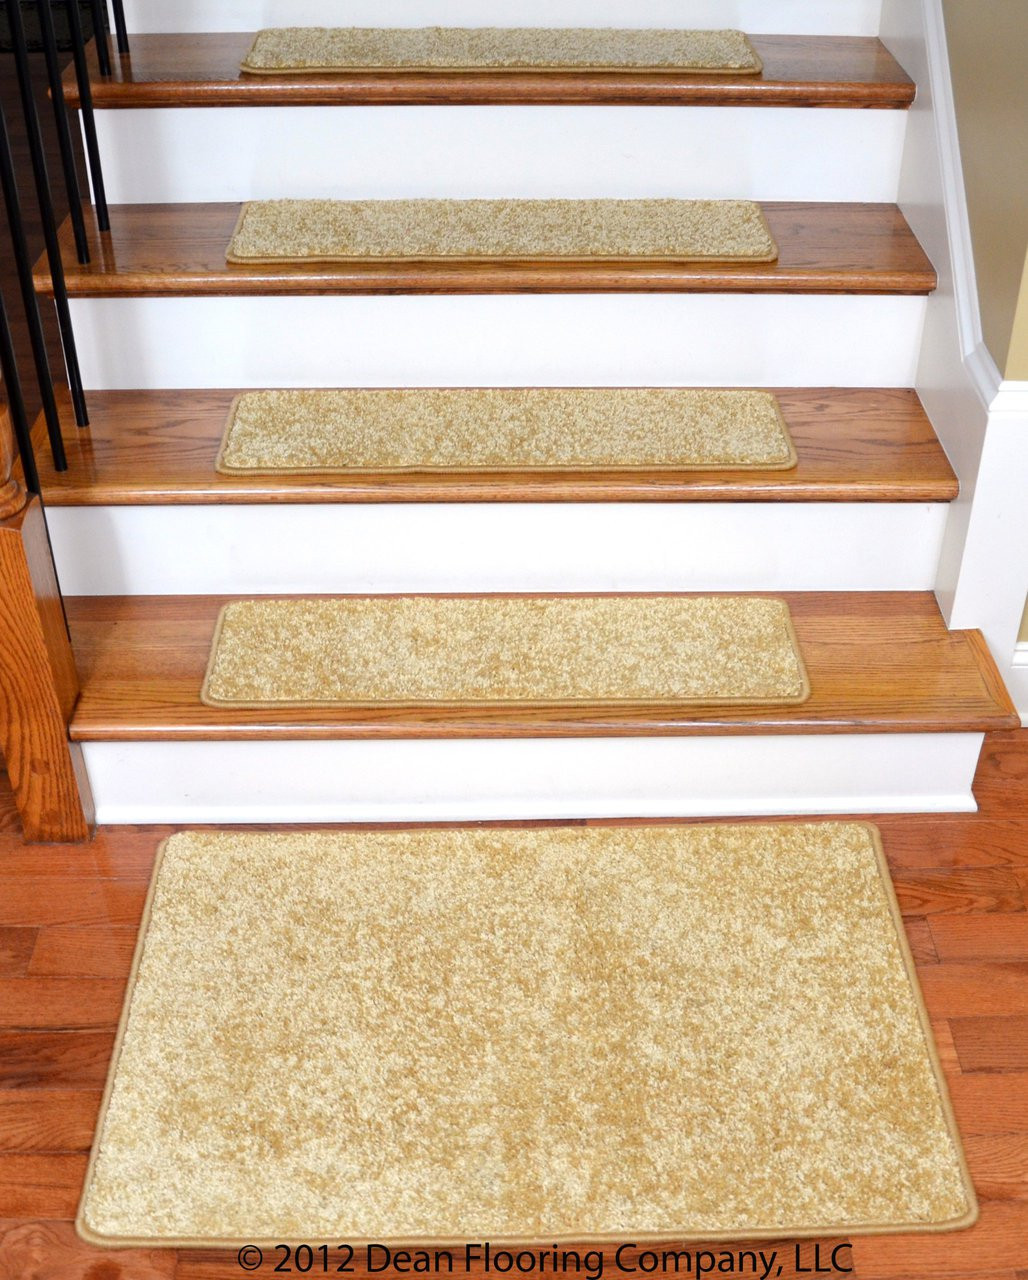 "Diy Stair Treads Out Of Flor Tiles: Dean DIY 30"" X 9"" Premium Carpet Stair Treads And 2' X 3"